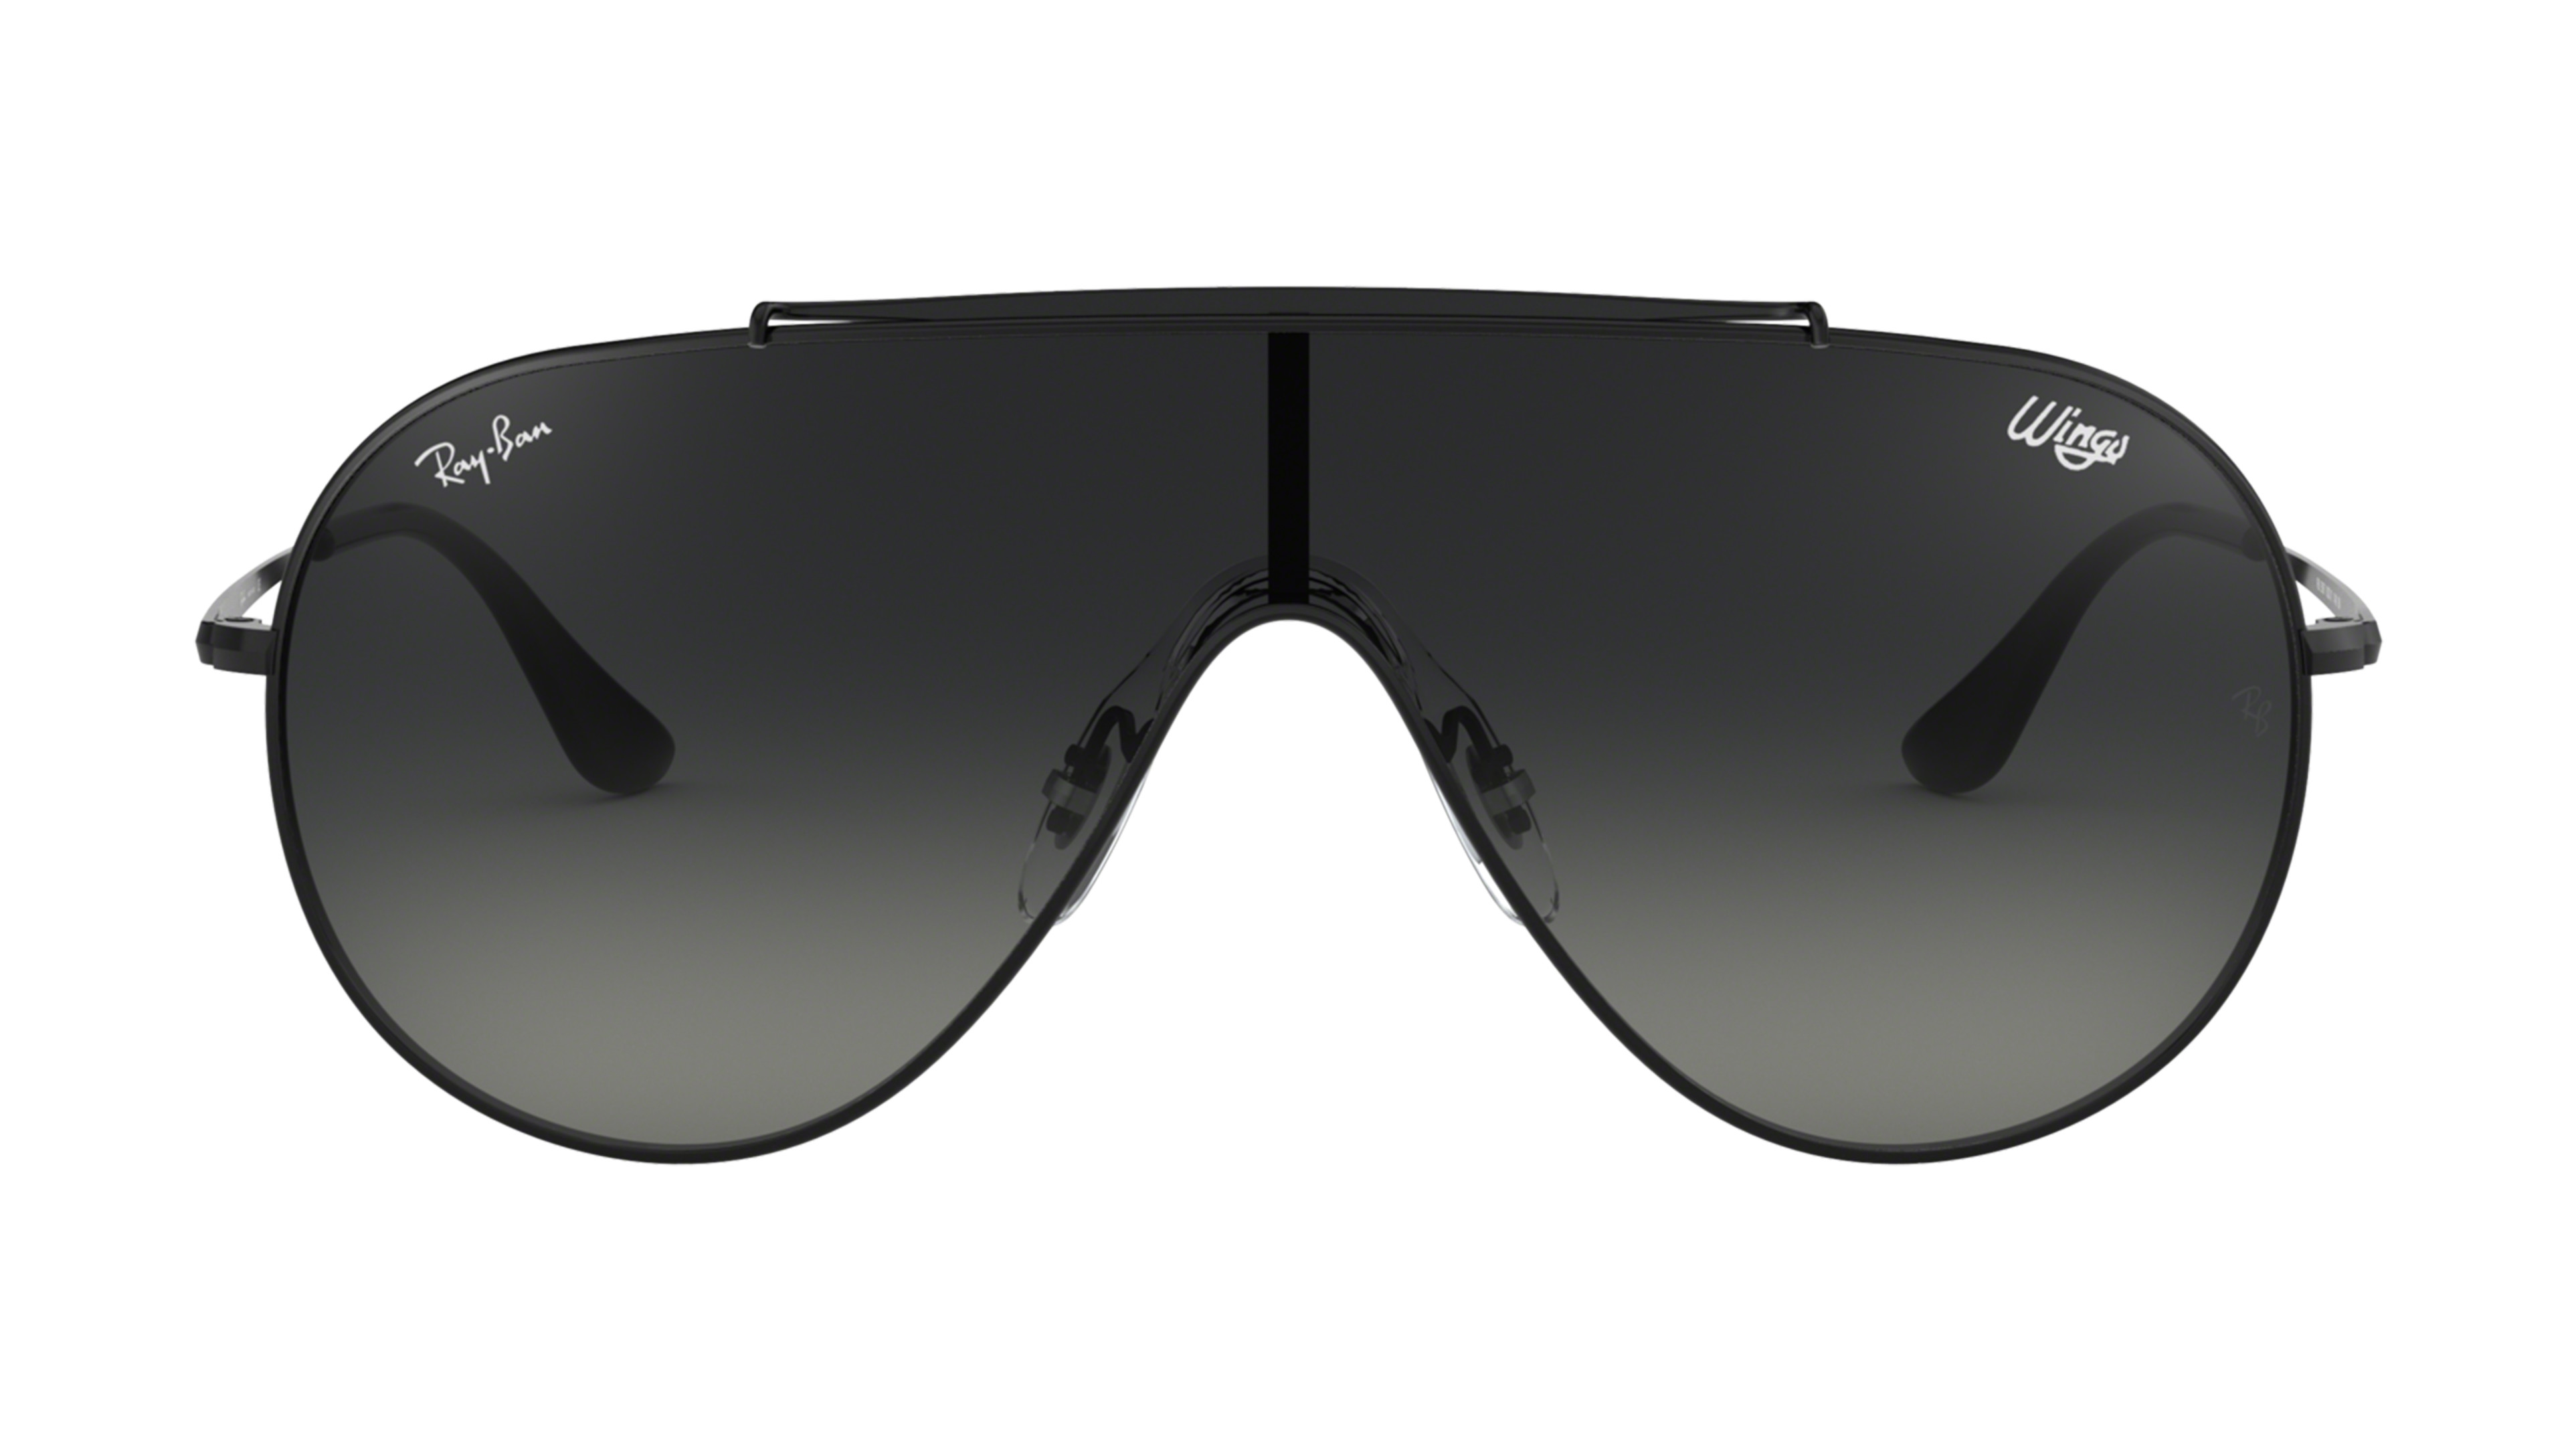 8053672919547-front-Ray-Ban-0RB3597-002-11-Wings